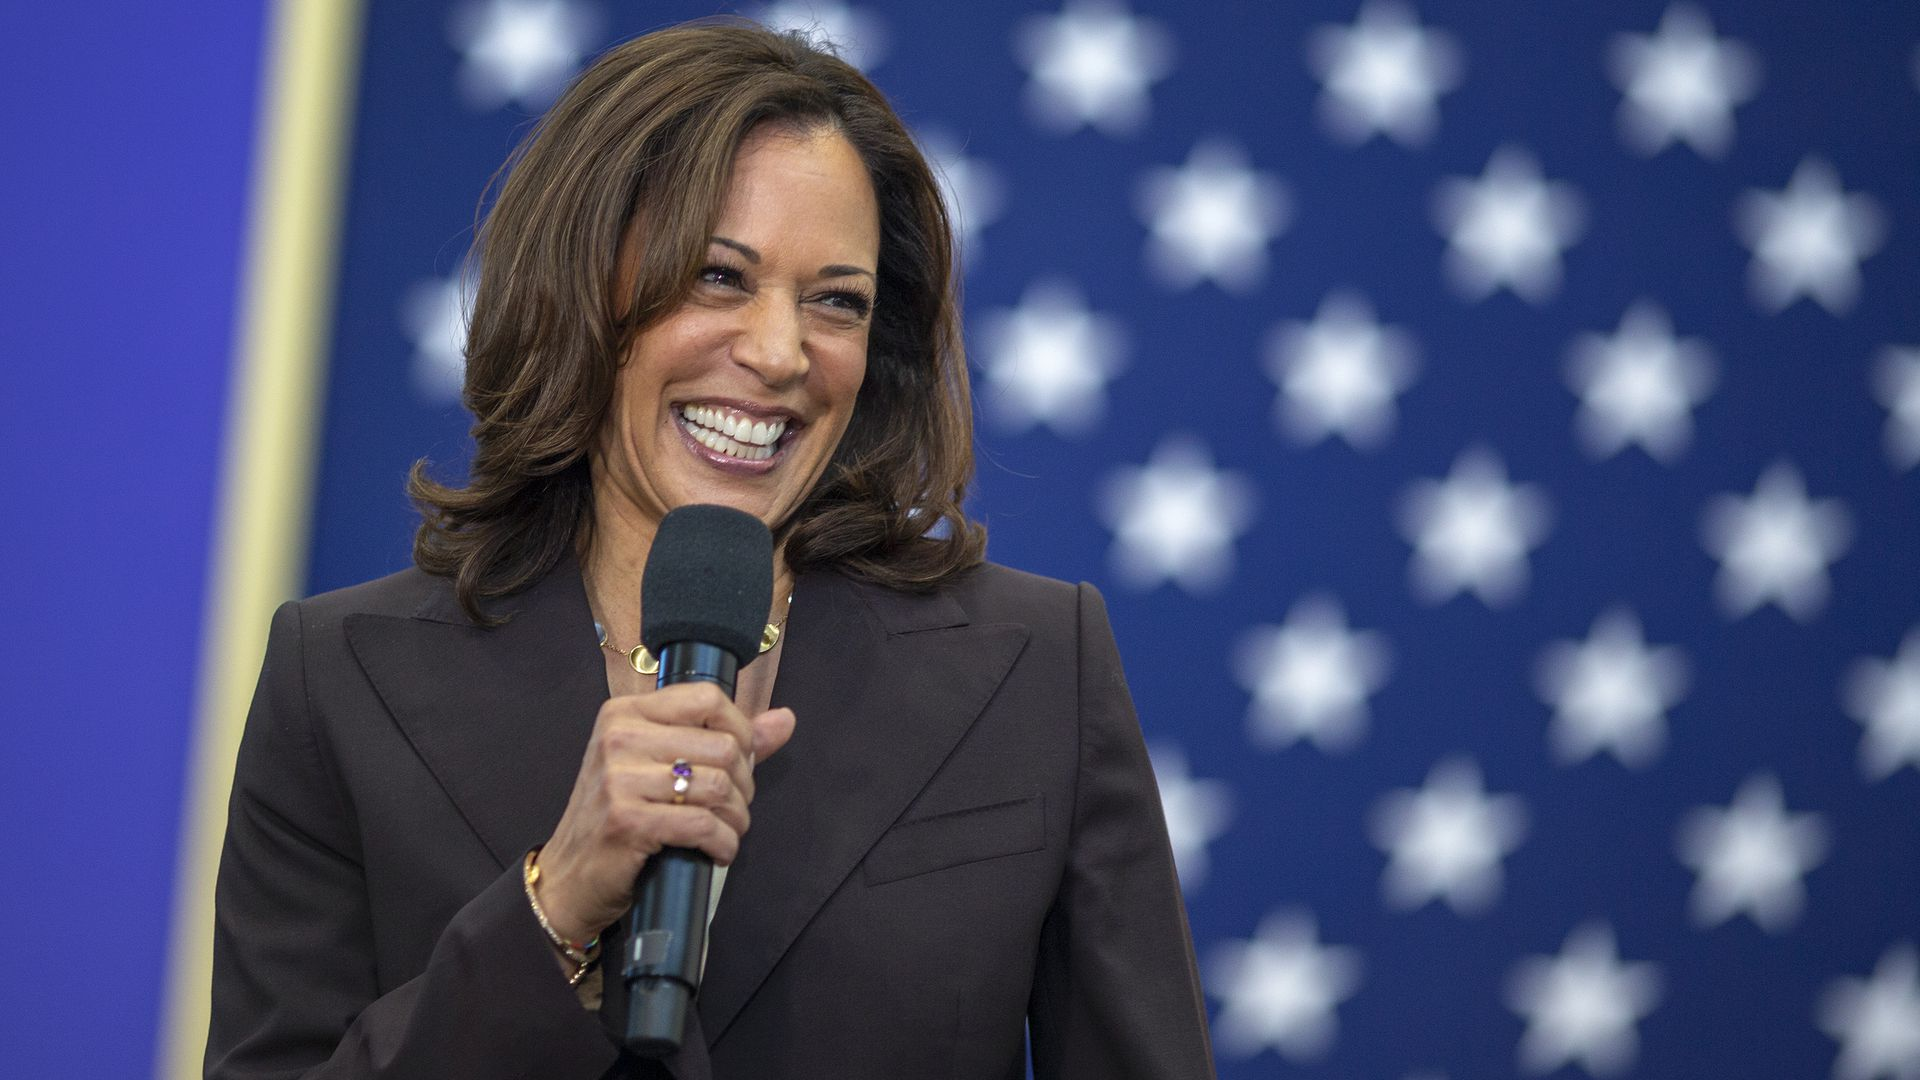 Kamala Harris smiling